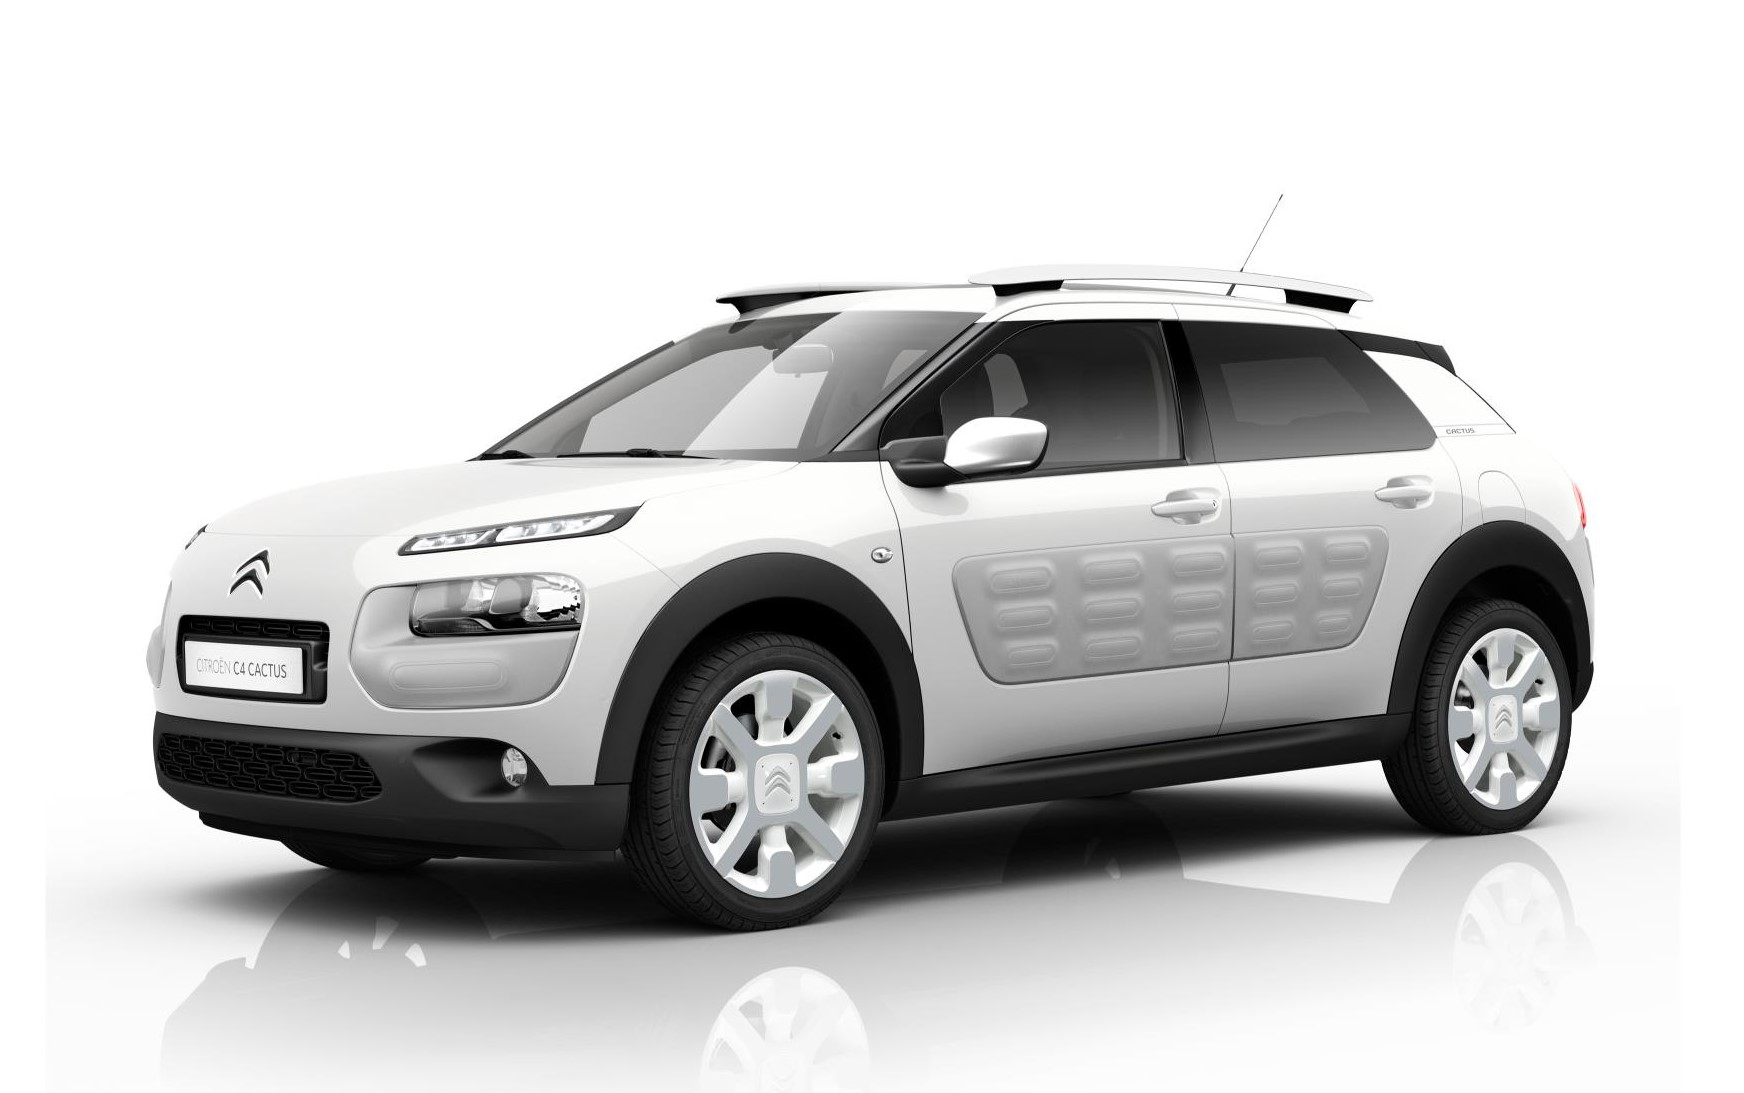 citroen c4 cactus w special edition takes a bow. Black Bedroom Furniture Sets. Home Design Ideas